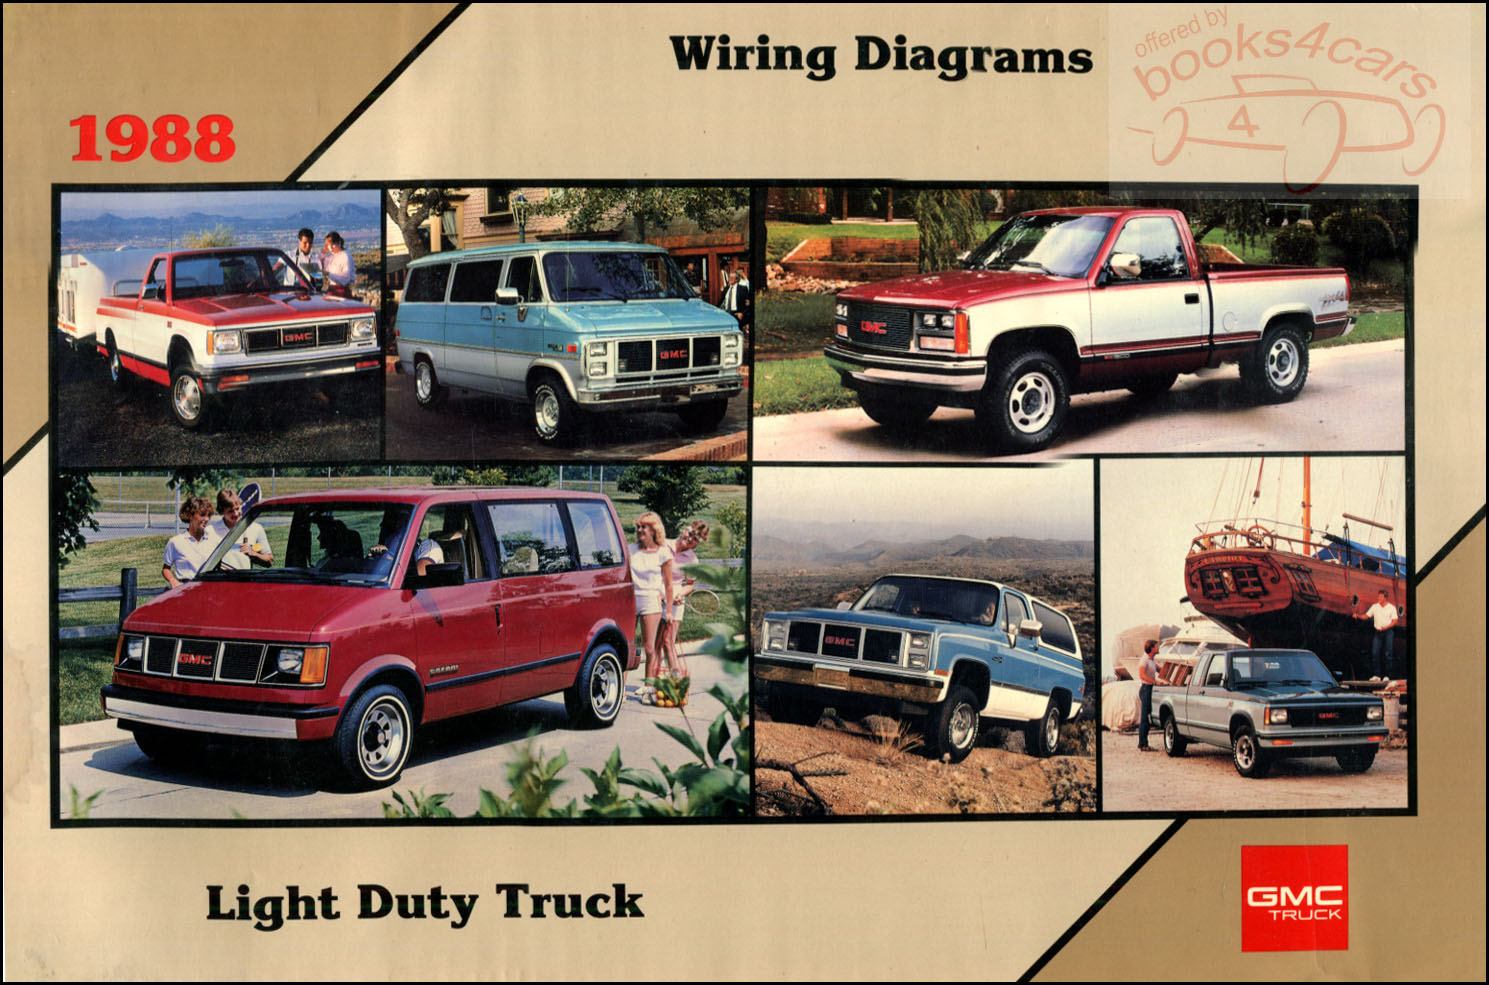 1991 gmc c k sierra pickup wiring diagram manual chevrolet diesel manuals at books4cars com  chevrolet diesel manuals at books4cars com